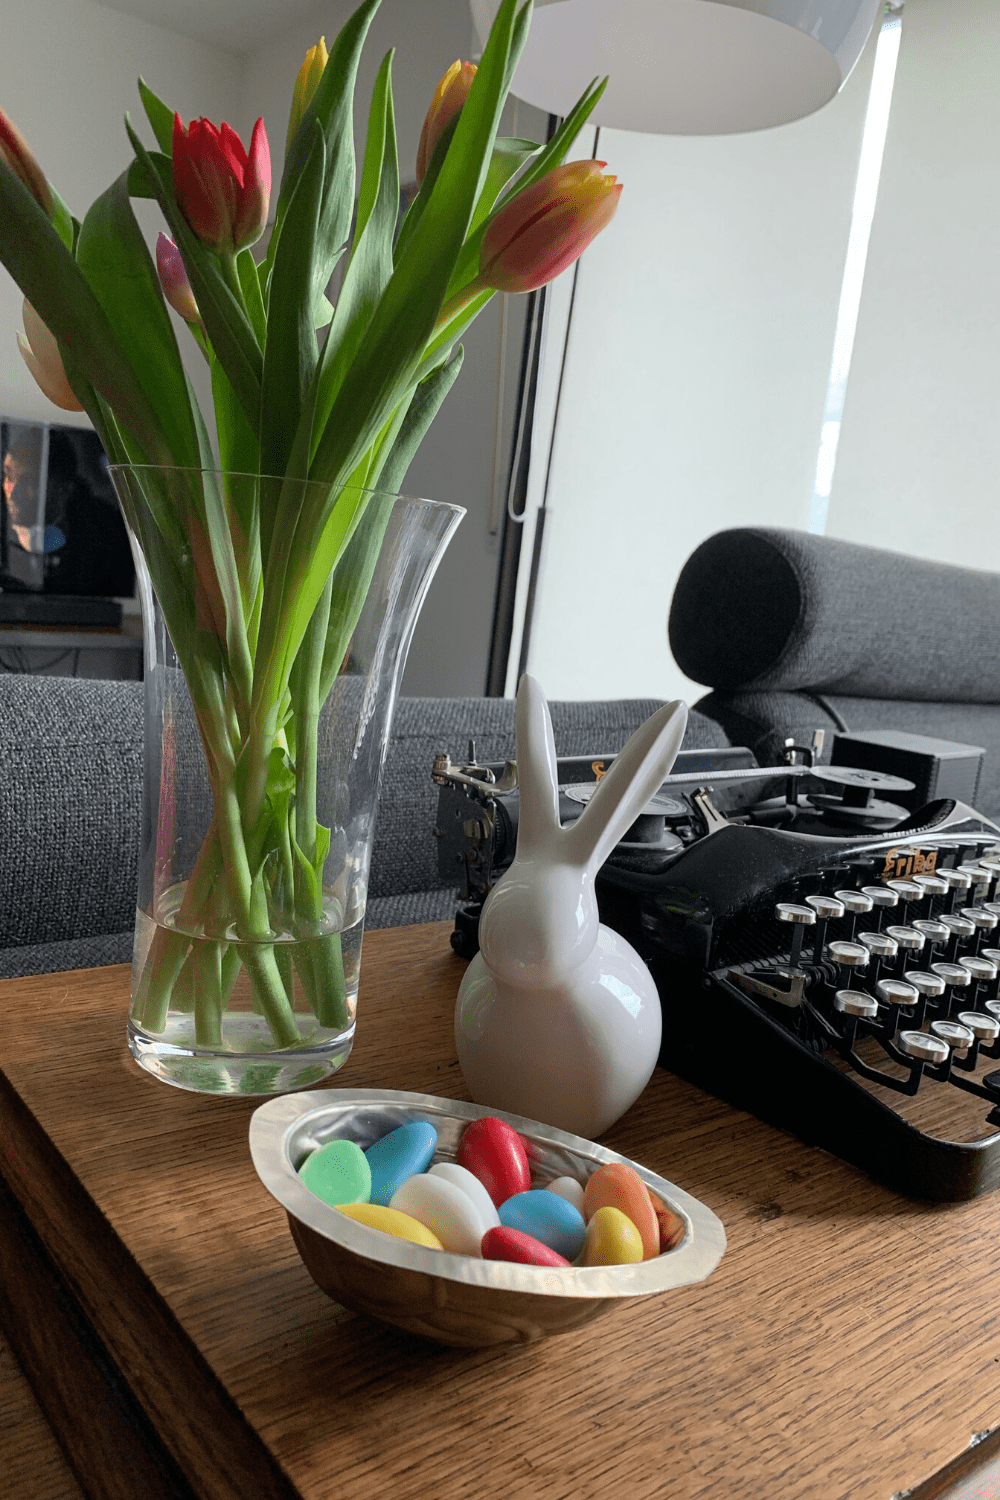 Some Scandi-inspired Easter decor on our sewing table, with a vase of tulips, vintage easter egg mould full of egg shaped jelly beans and ceramic Danish design white bunny